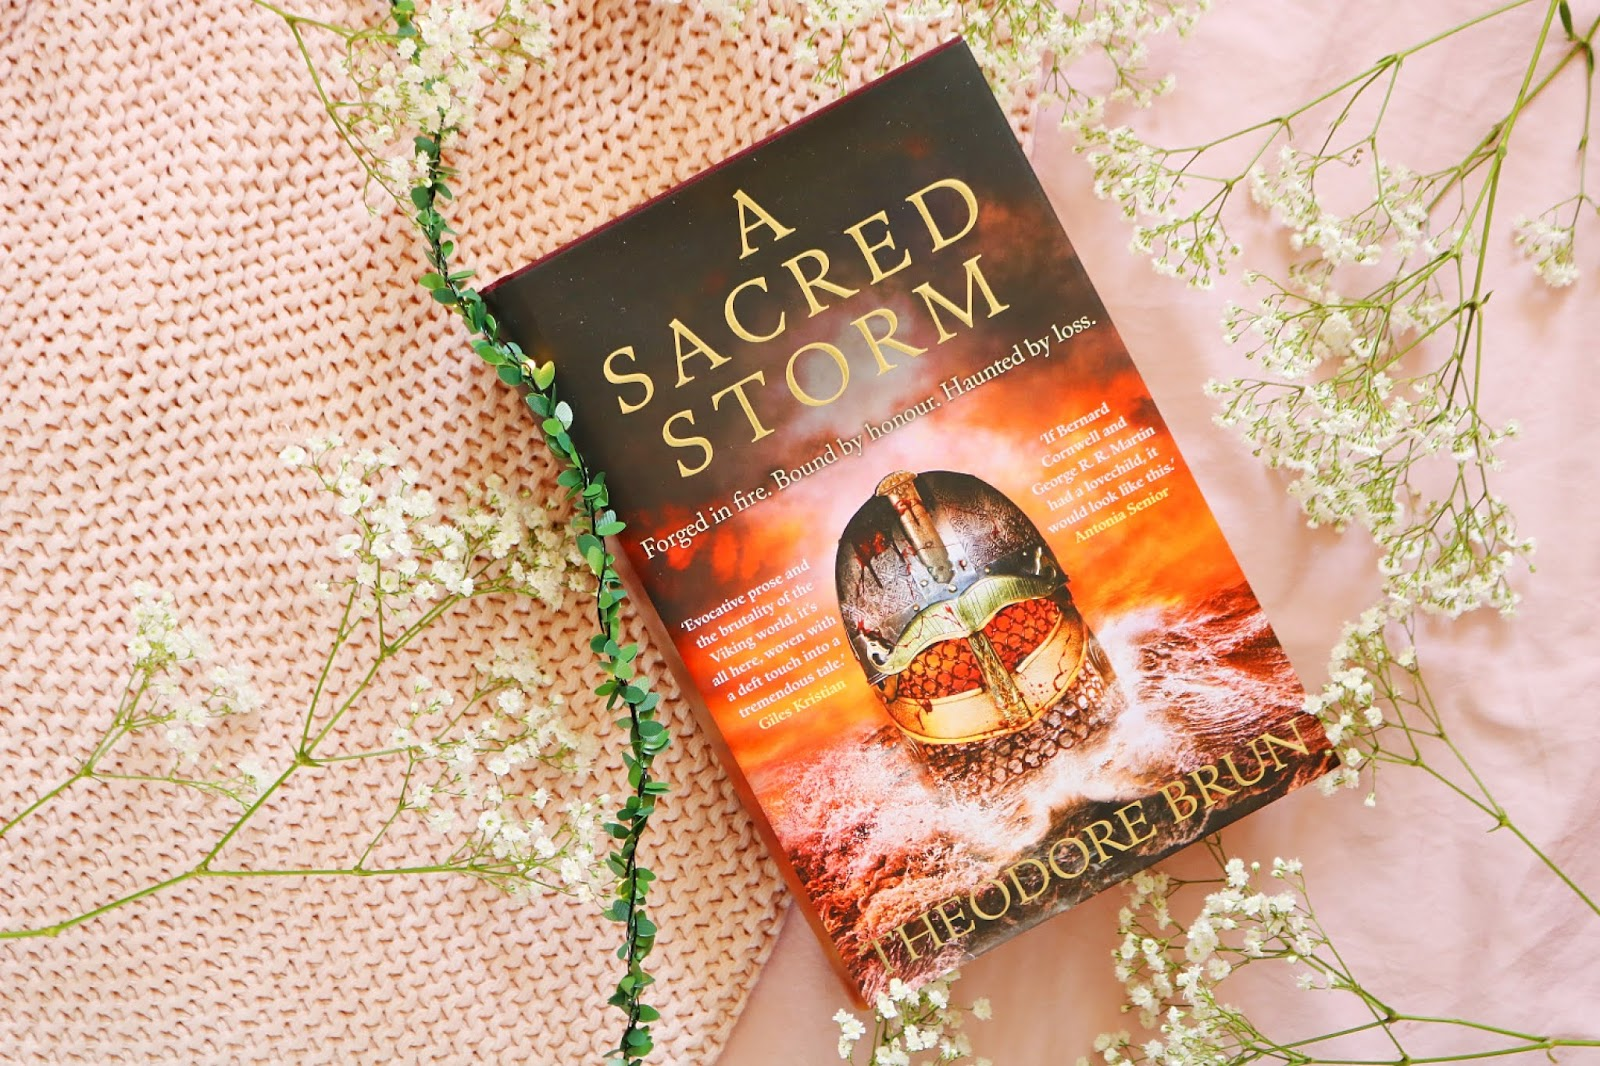 Blog Tour: A Sacred Storm by Theodore Brun